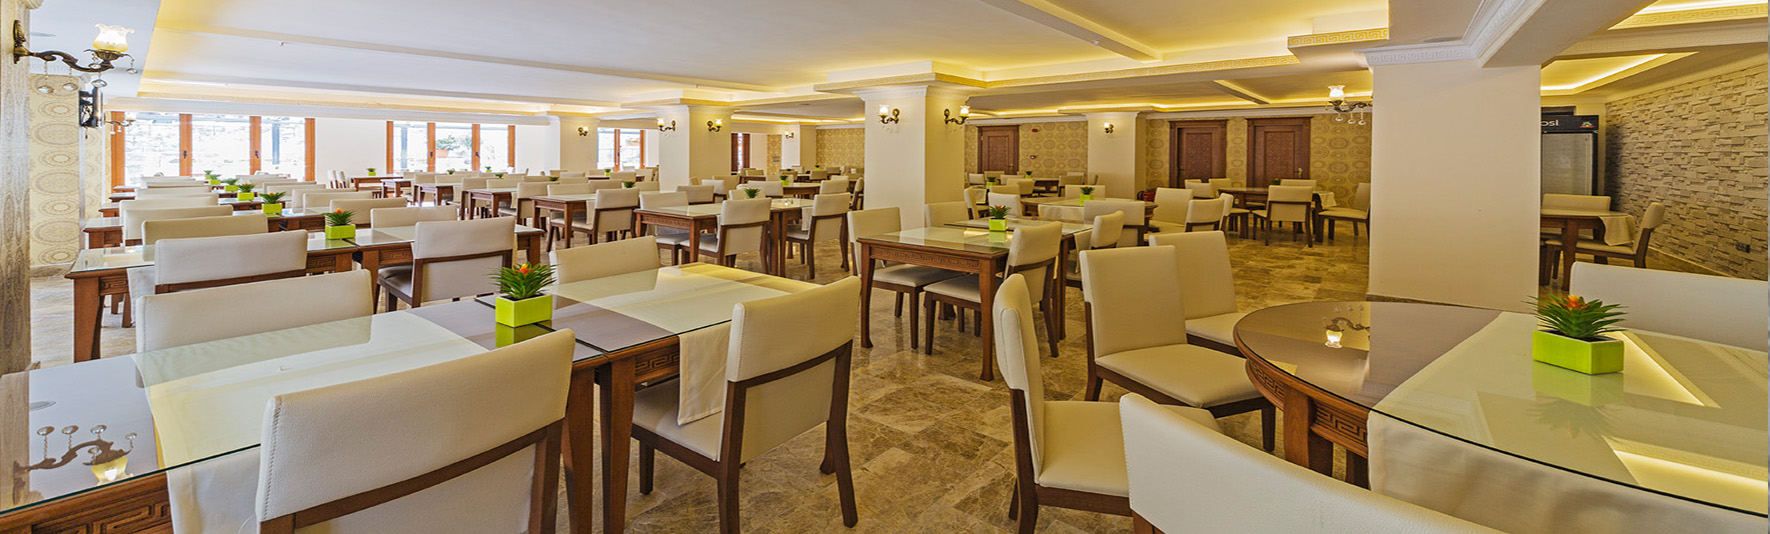 lausos palace tandır restaurant cafe breakfast